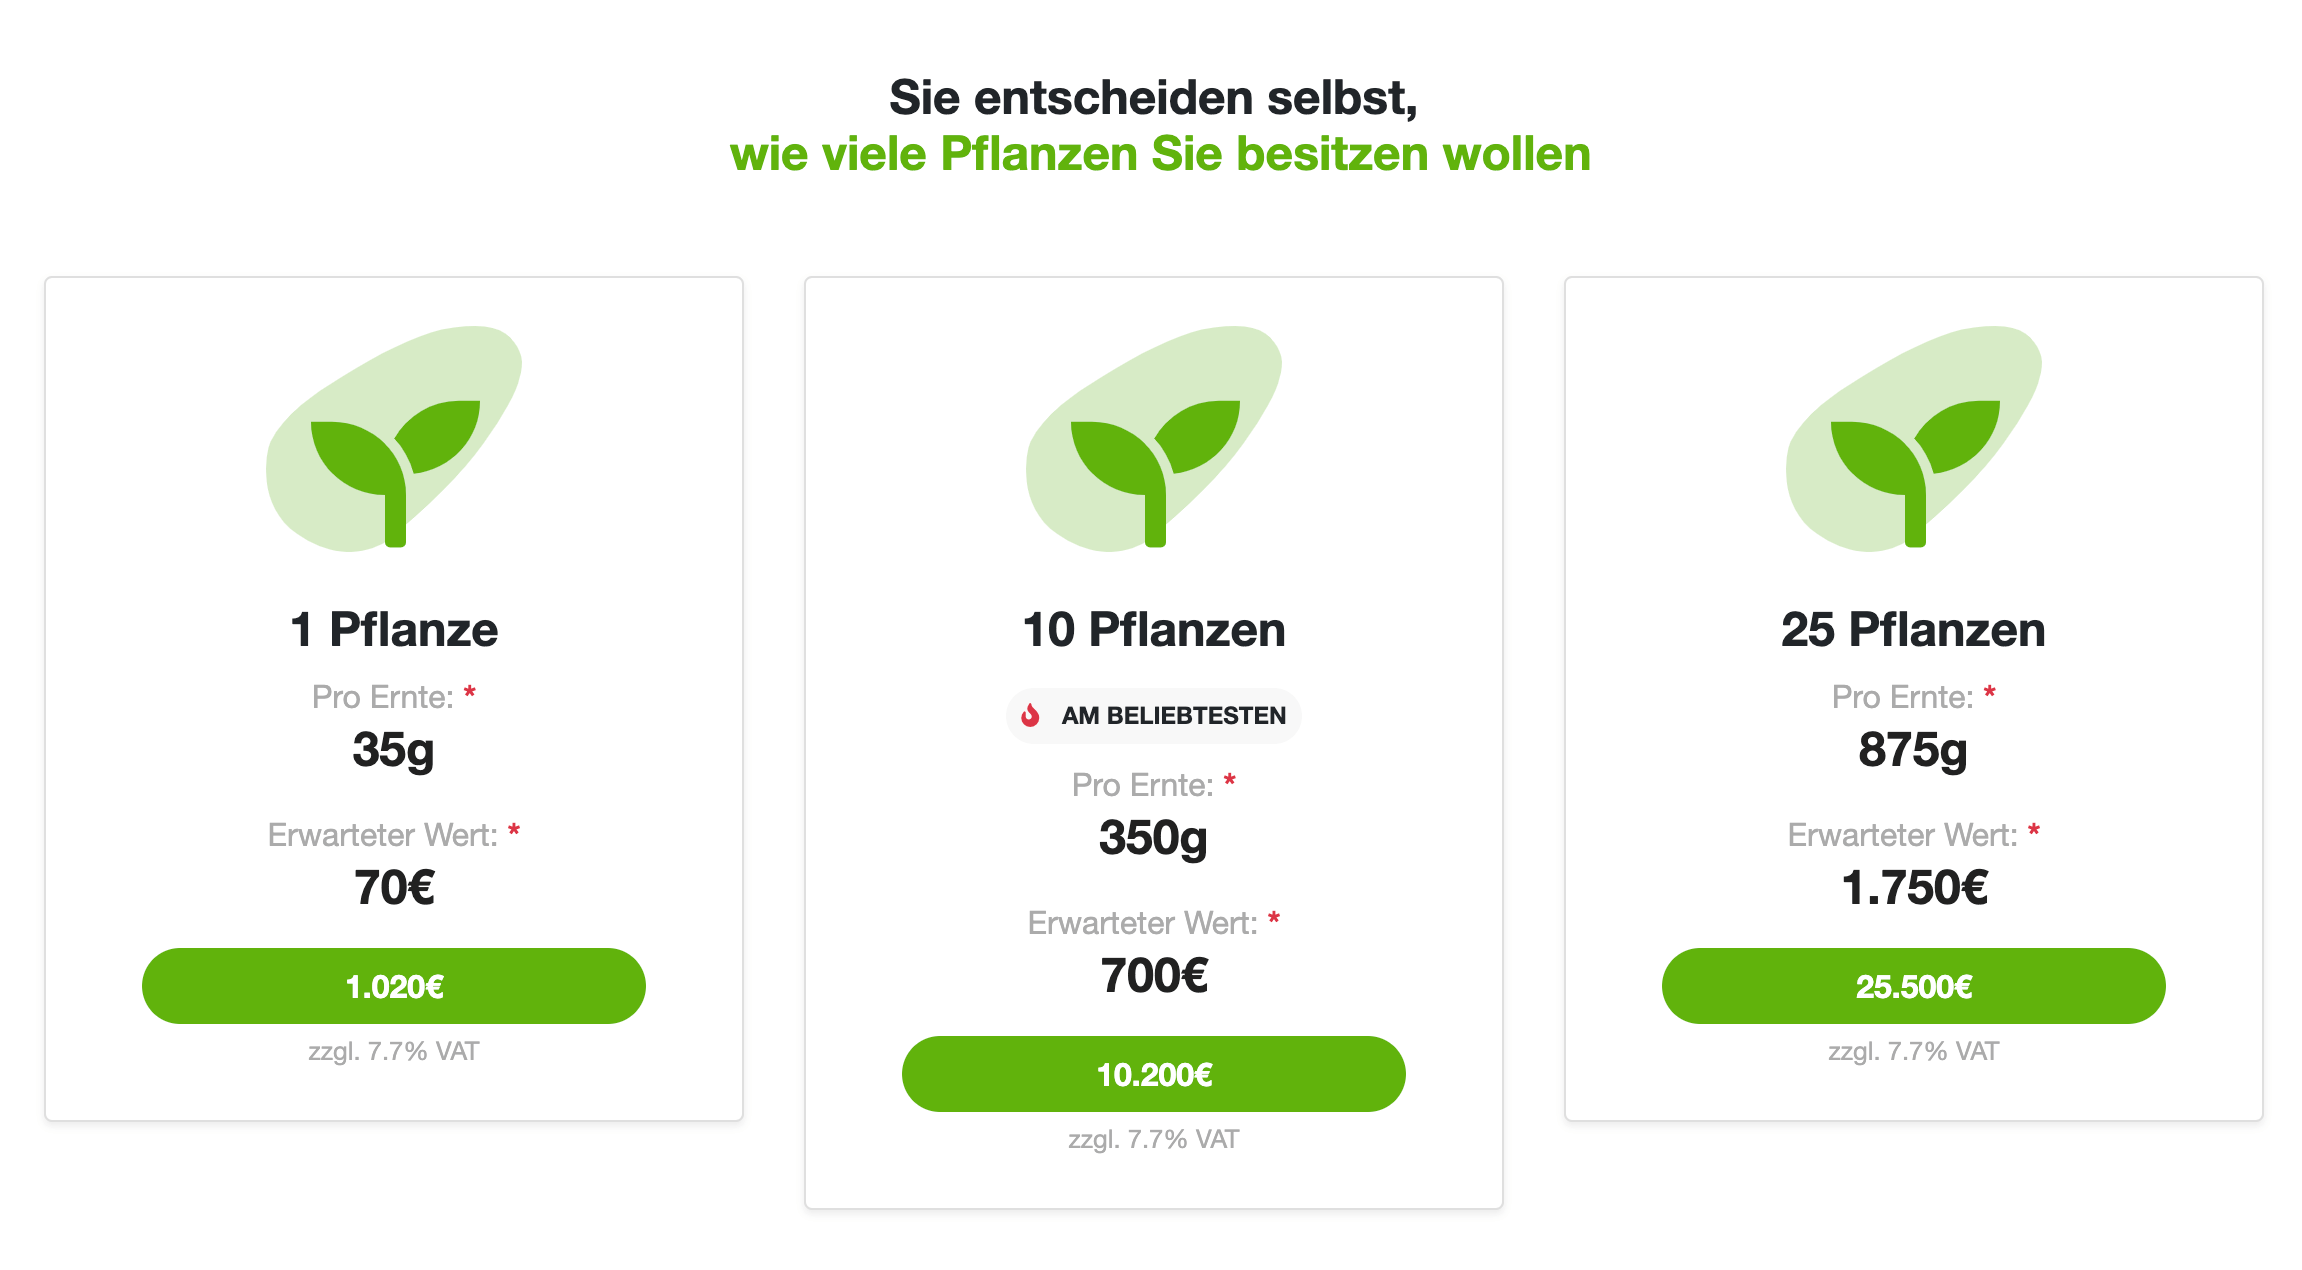 cannabis investment, cannabis pflanzen investment, cannerald, cannerald gmbh, cannerald schweiz, cannergrow mazedonien, cannerald test, cannerald token, cannergrow, cannergrow affiliate, cannergrow cannabis, cannergrow erfahrungen, cannergrow kritik, cannergrow partner programm, cannergrow serioes, cannergrow seriös, cannergrow test, cannermed, cannerrec, levin amweg, stefan amweg, Fabian eder, cannergrow login, cannergrow schweiz, cannergrow deutsch, cannergrow erfahrung, cannergrow ico, cannergrow reddit, cannergrow review, cannergrow scam, cannergrow token, cannerald token sale, cannerald bern, cannerald erfahrungen, cannerald llc, cannerald login, cannerald review, levin amweg cannerald, drogen dealer werden, cannergrow mlm, cannergrow network marketing, cannergrow multi level marketing, cannergrow registrieren, cannergrow anmelden, cannergrow investieren